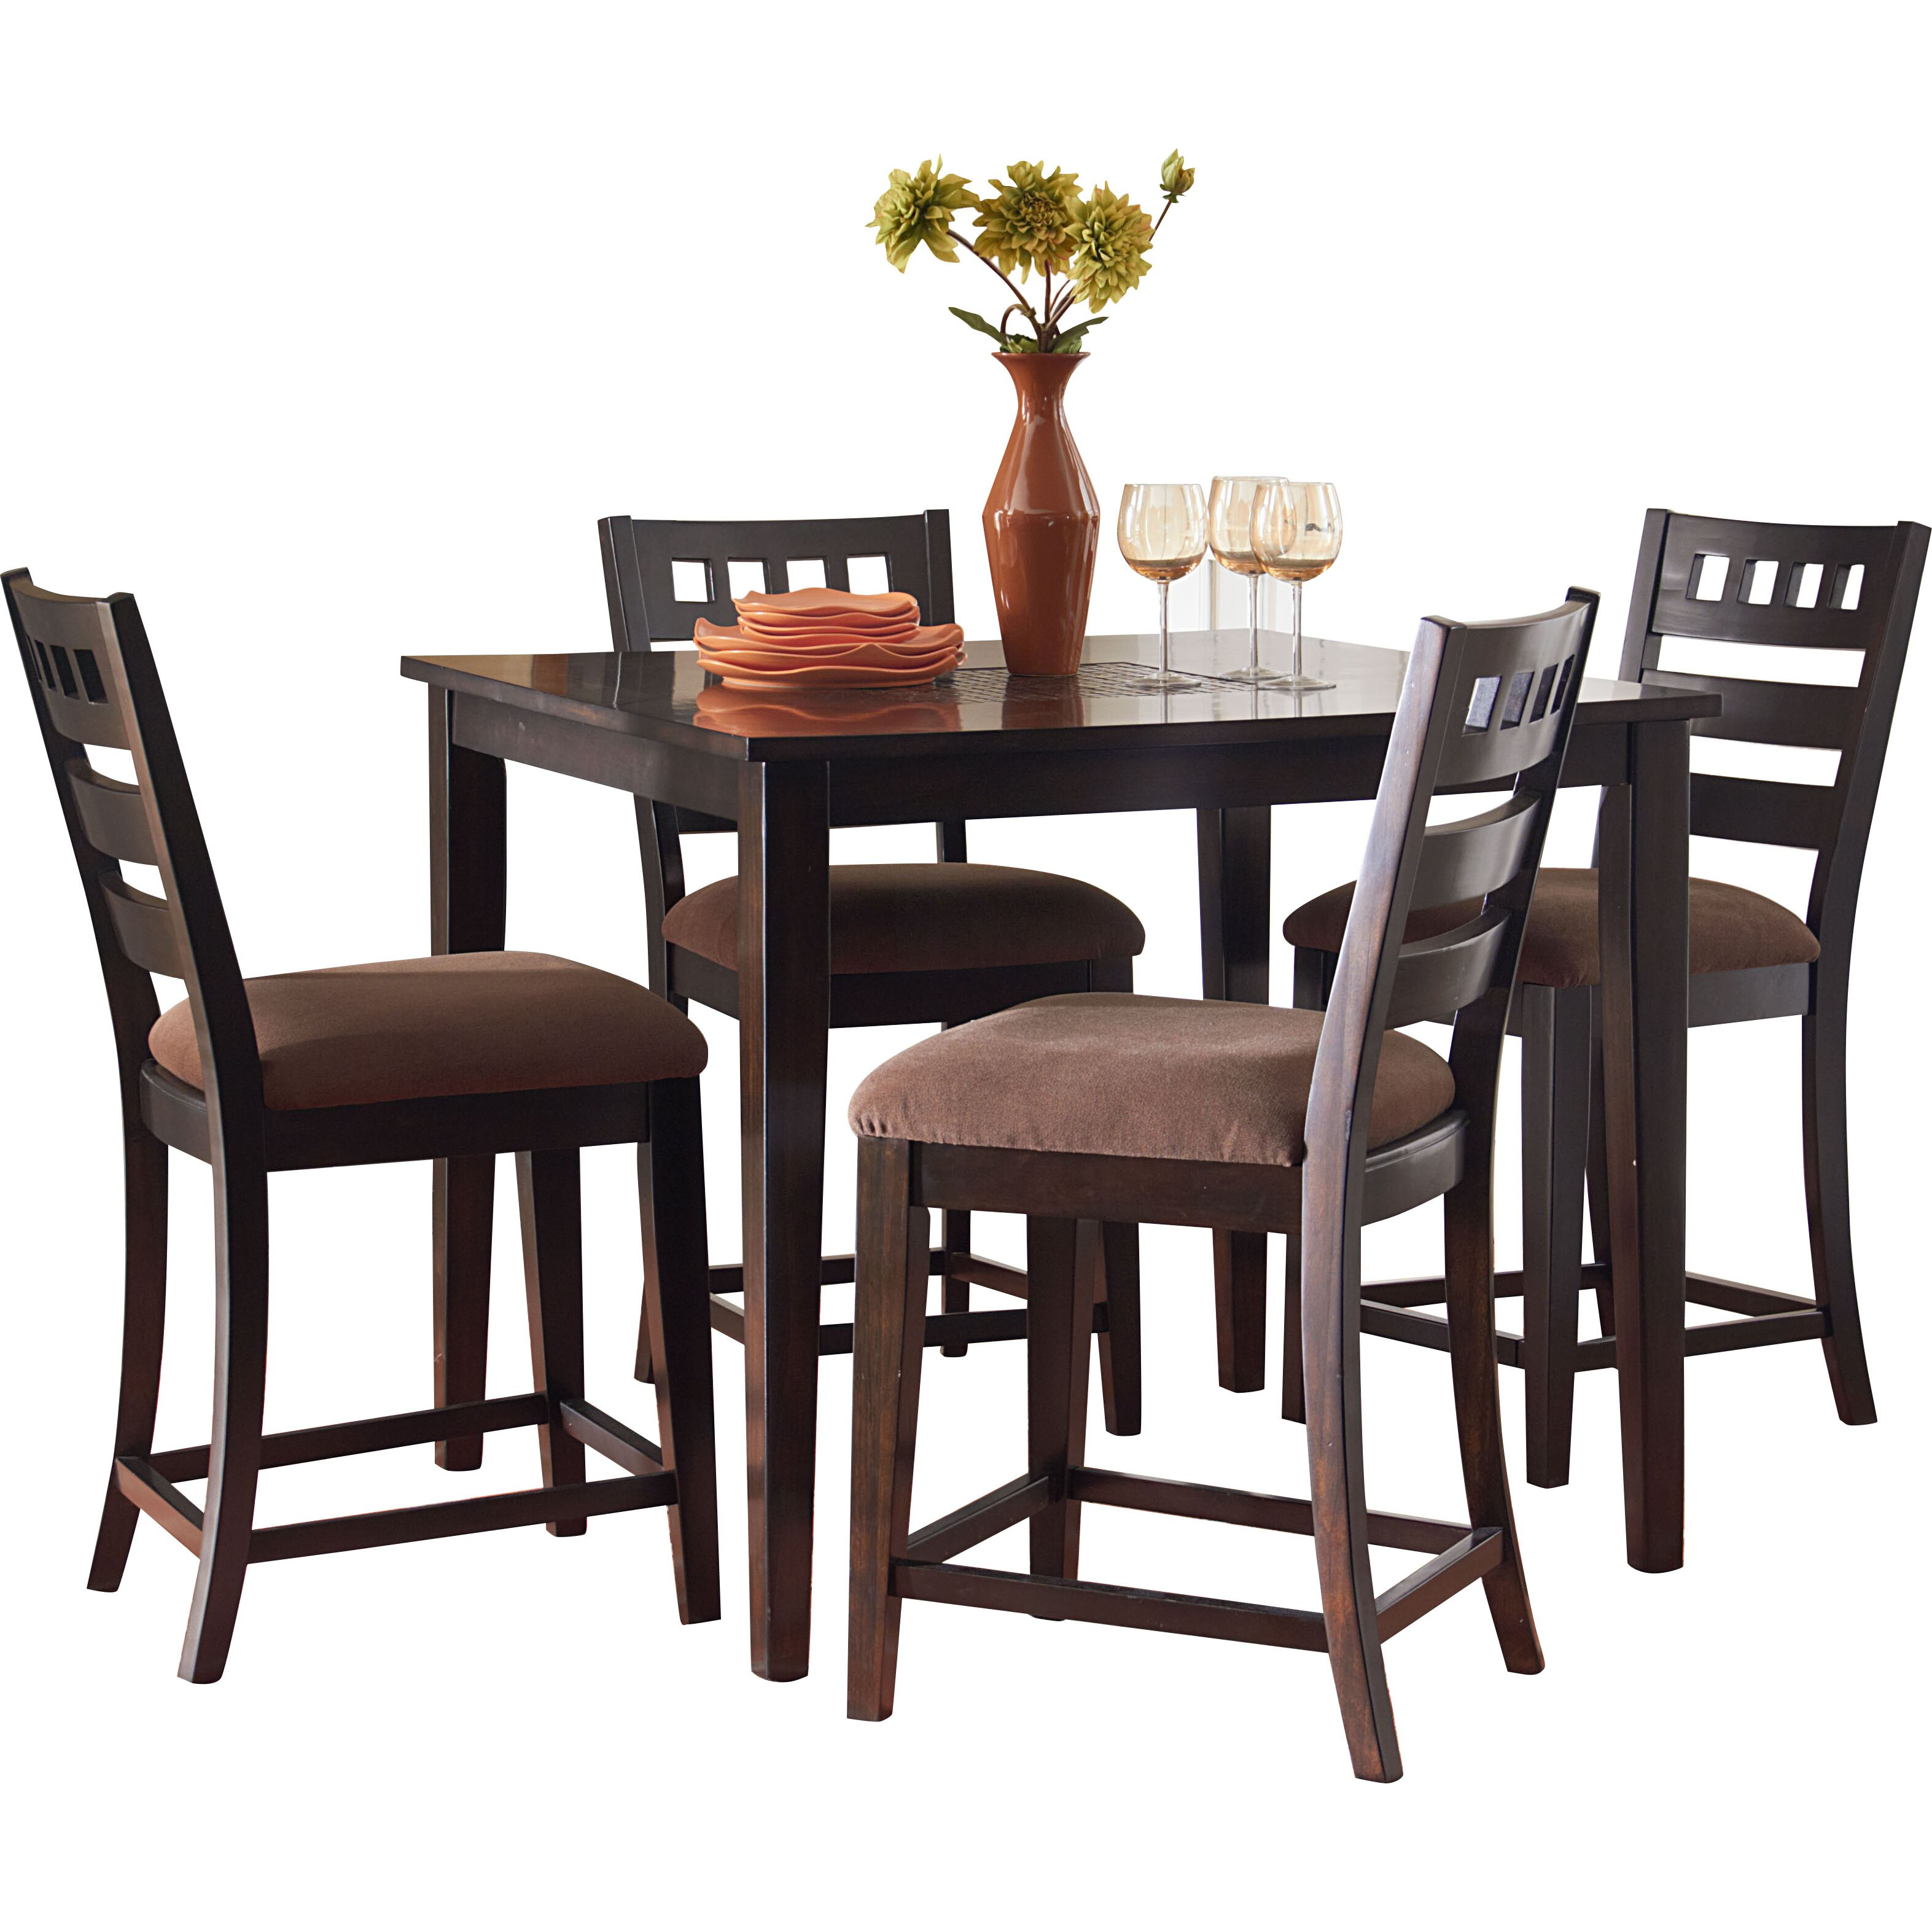 standard furniture coterno 5 piece counter height dining room set collections